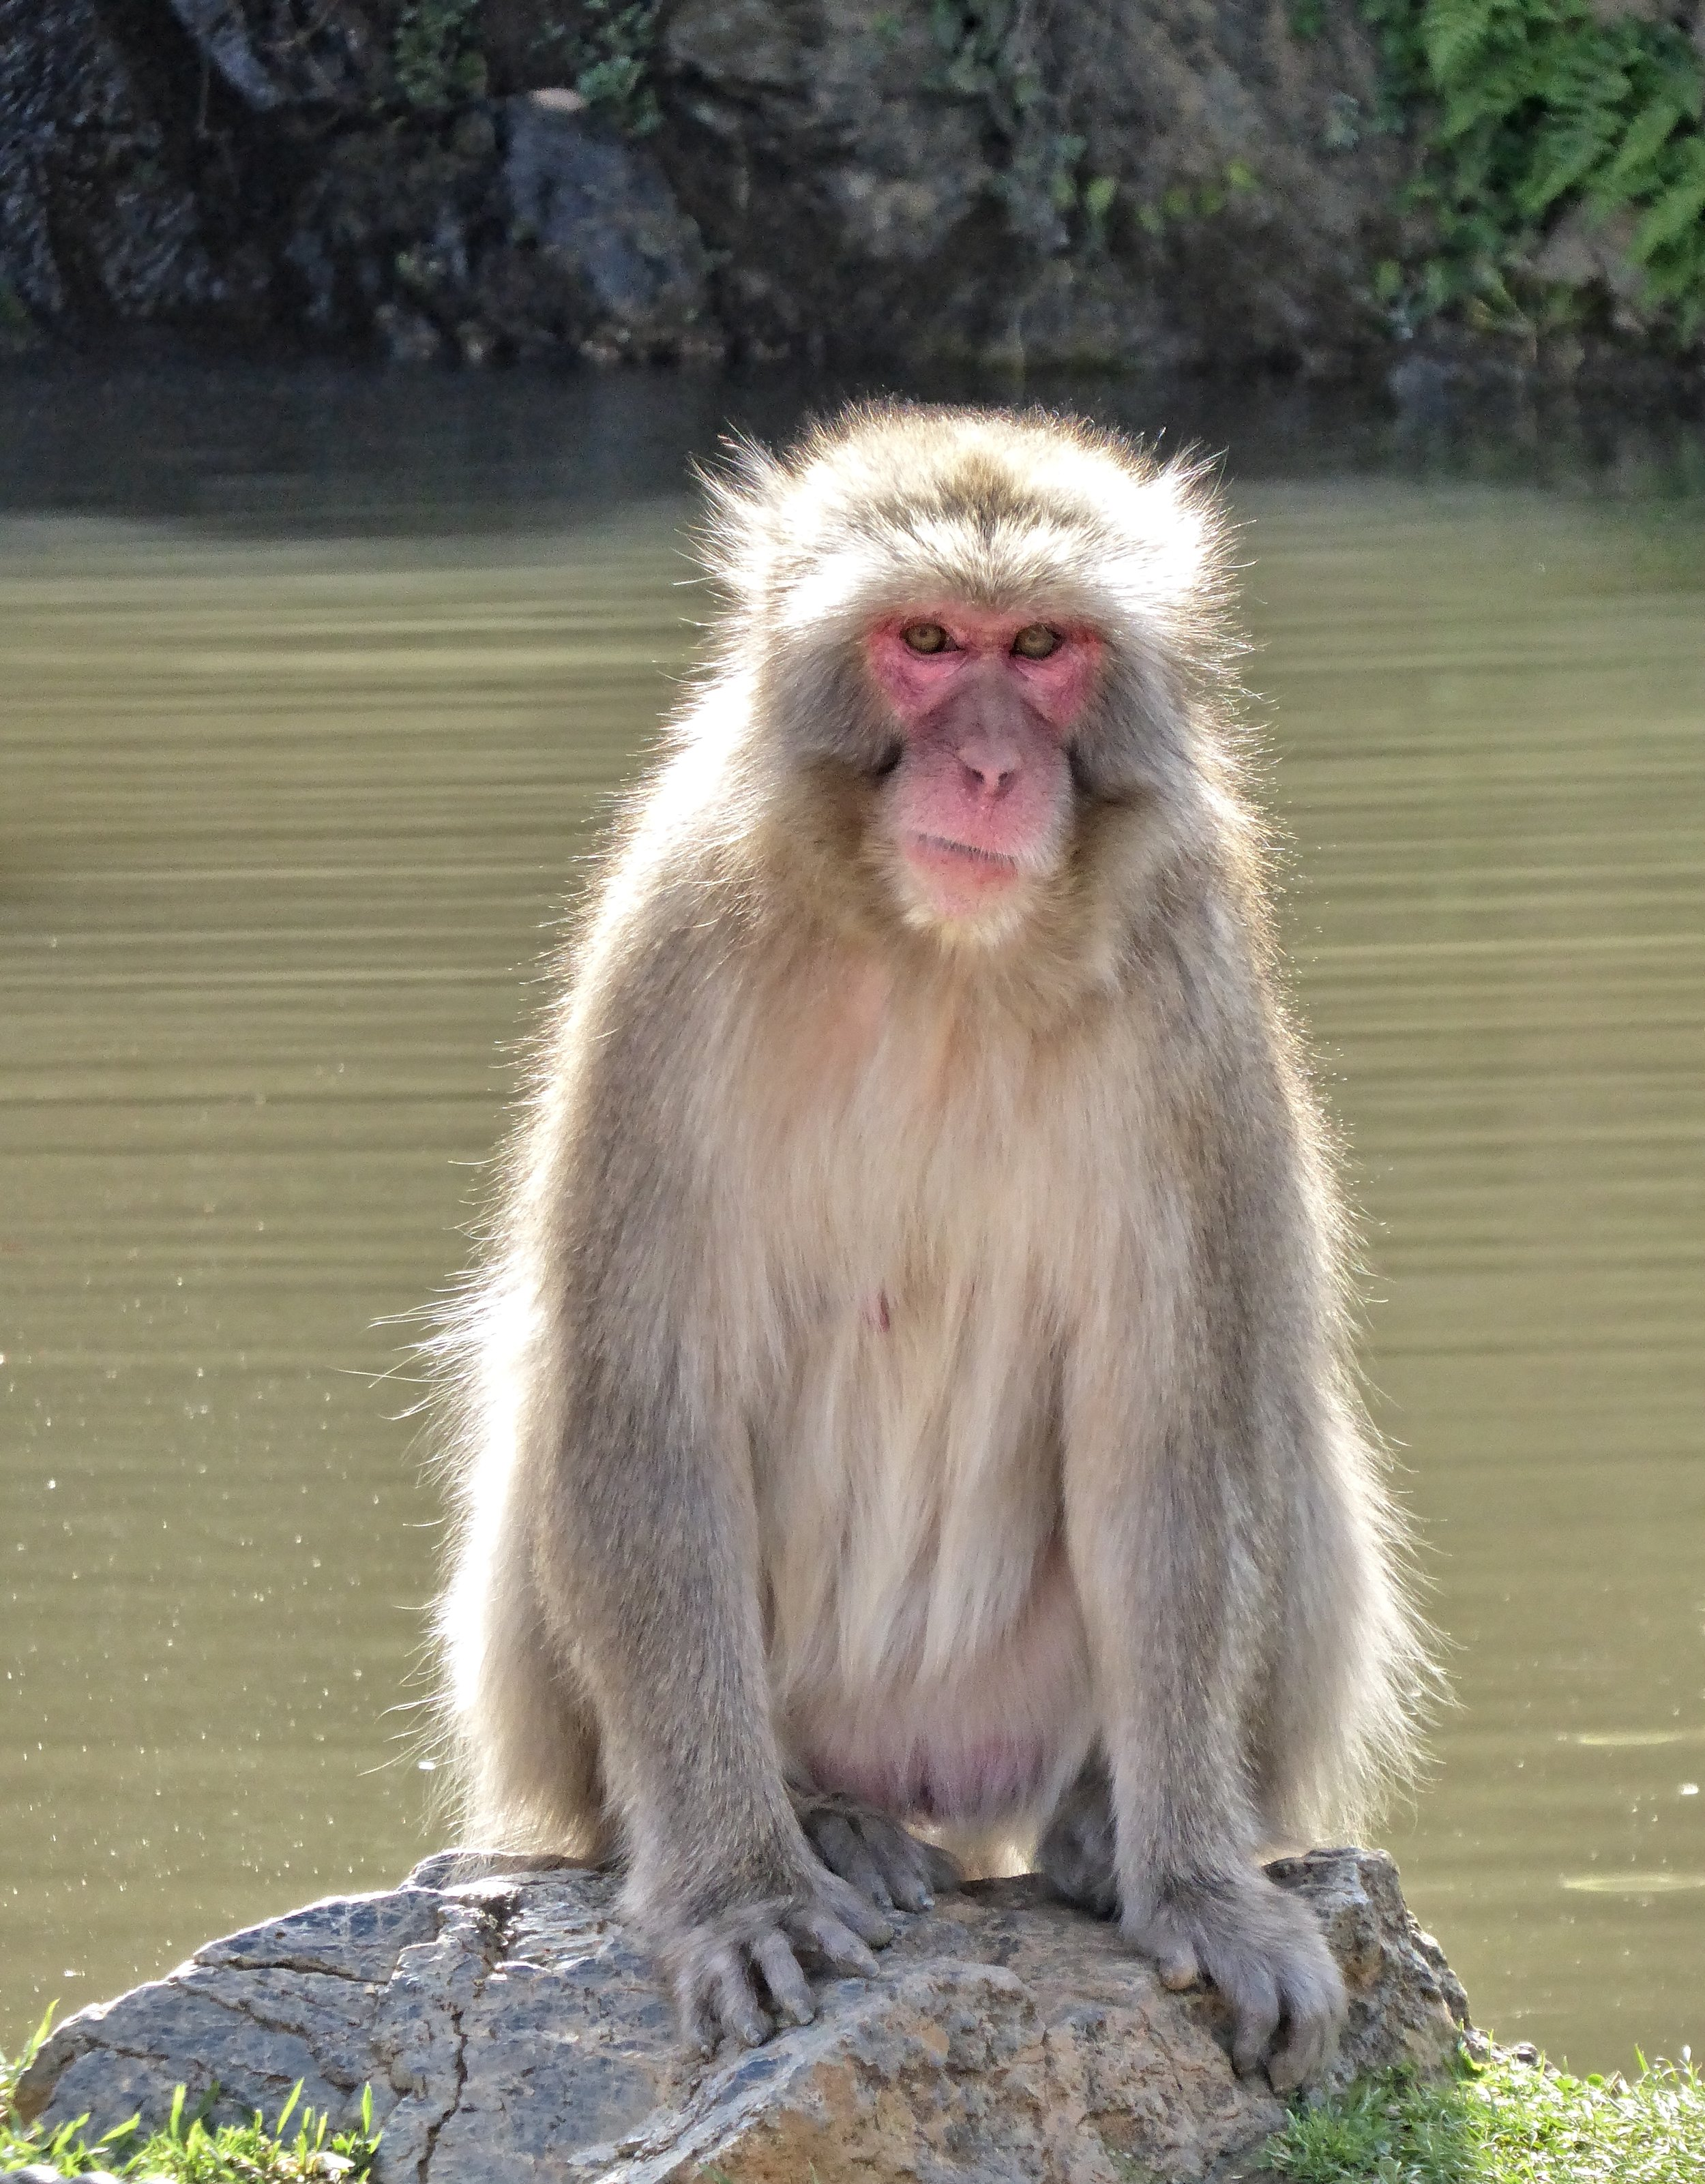 These snow monkeys were so adorable and we had an awesome afternoon hanging out with them.